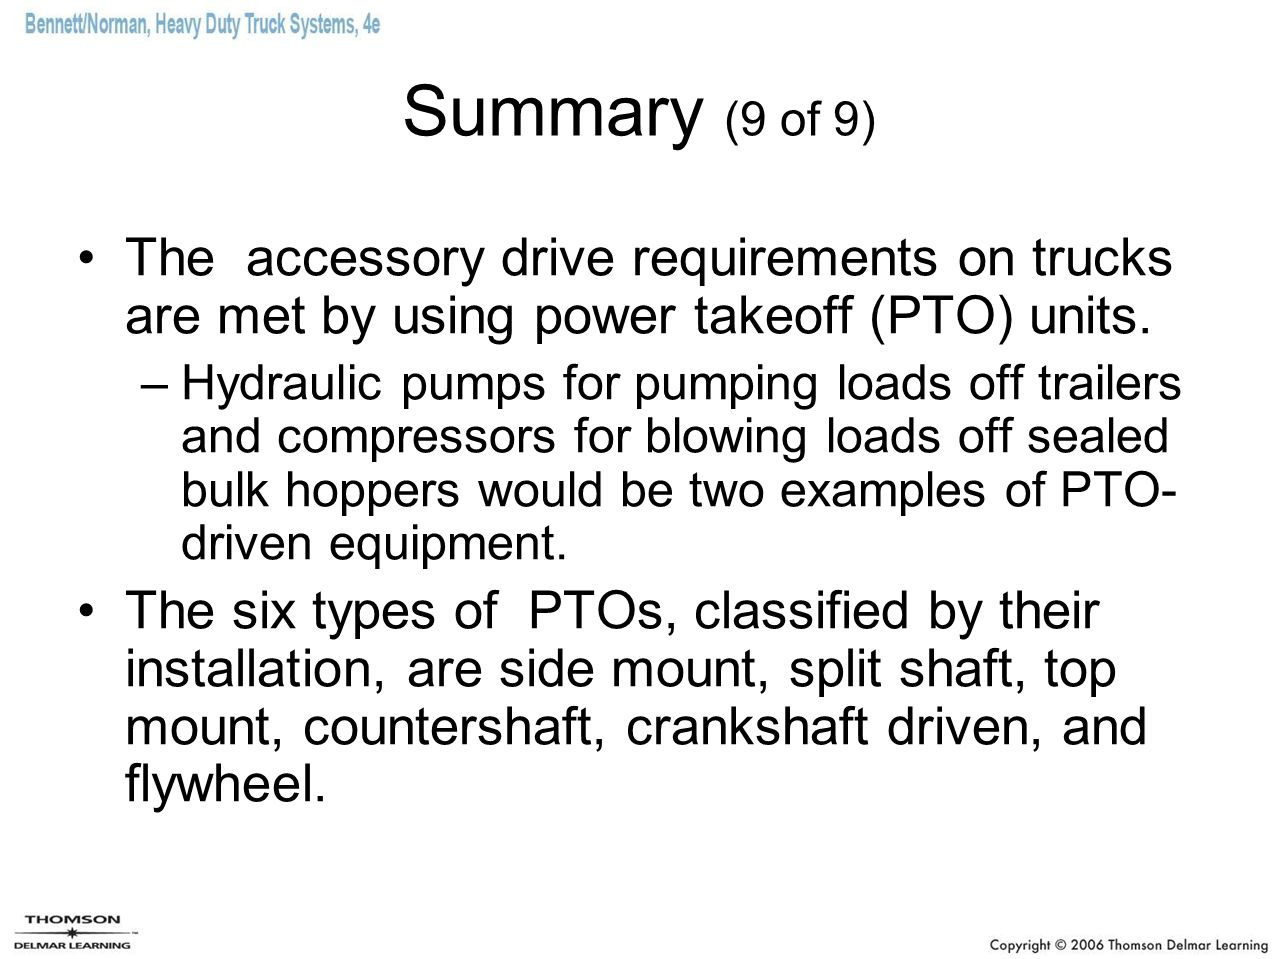 Summary (9 of 9) The accessory drive requirements on trucks are met by using power takeoff (PTO) units.